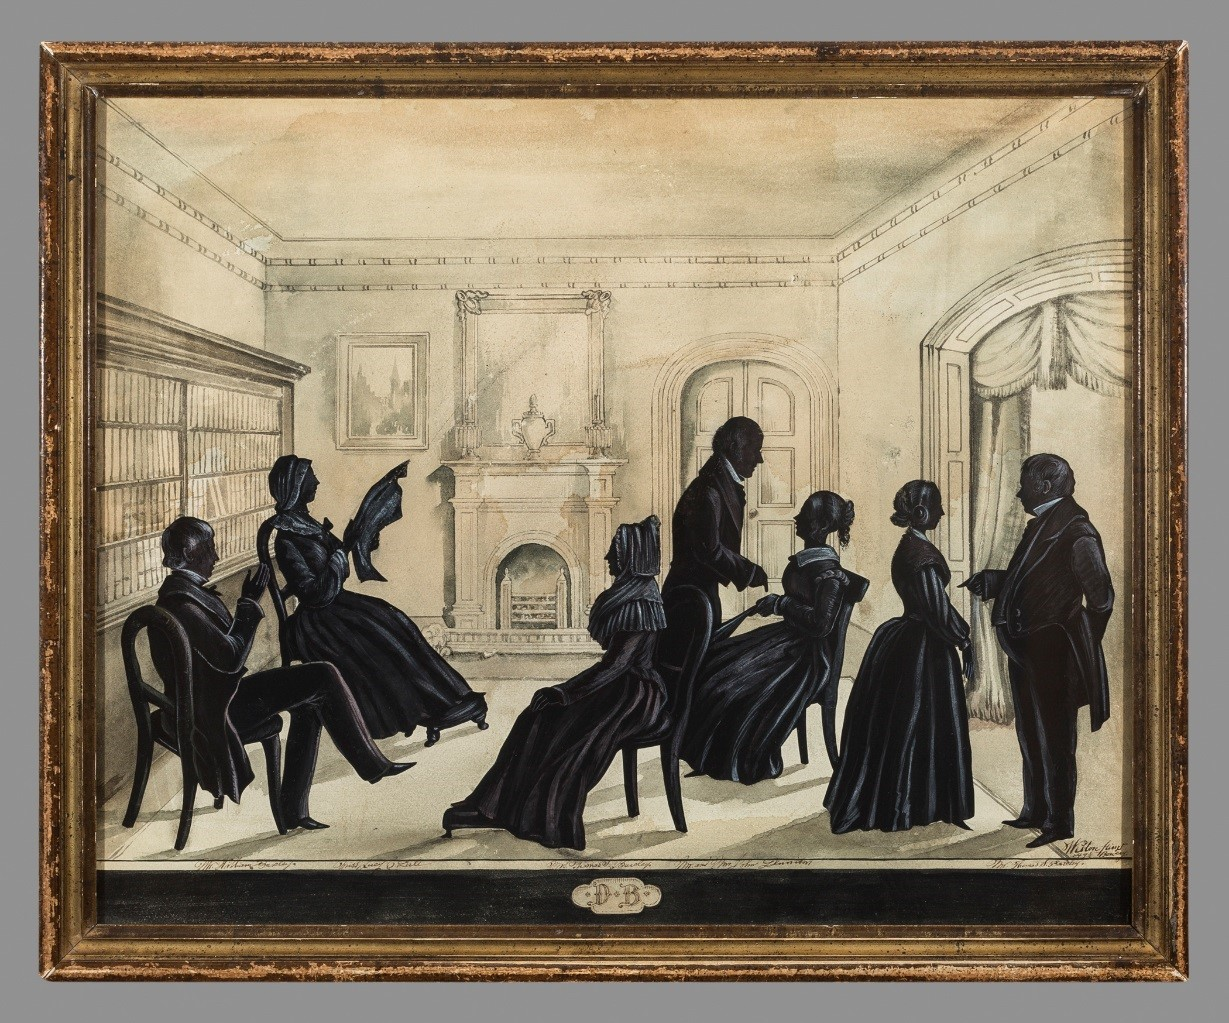 Group Silhouette Weston Profiles New York Ca 1840 50 Bequest Of Mrs Helen Shumway Mayer 20031335